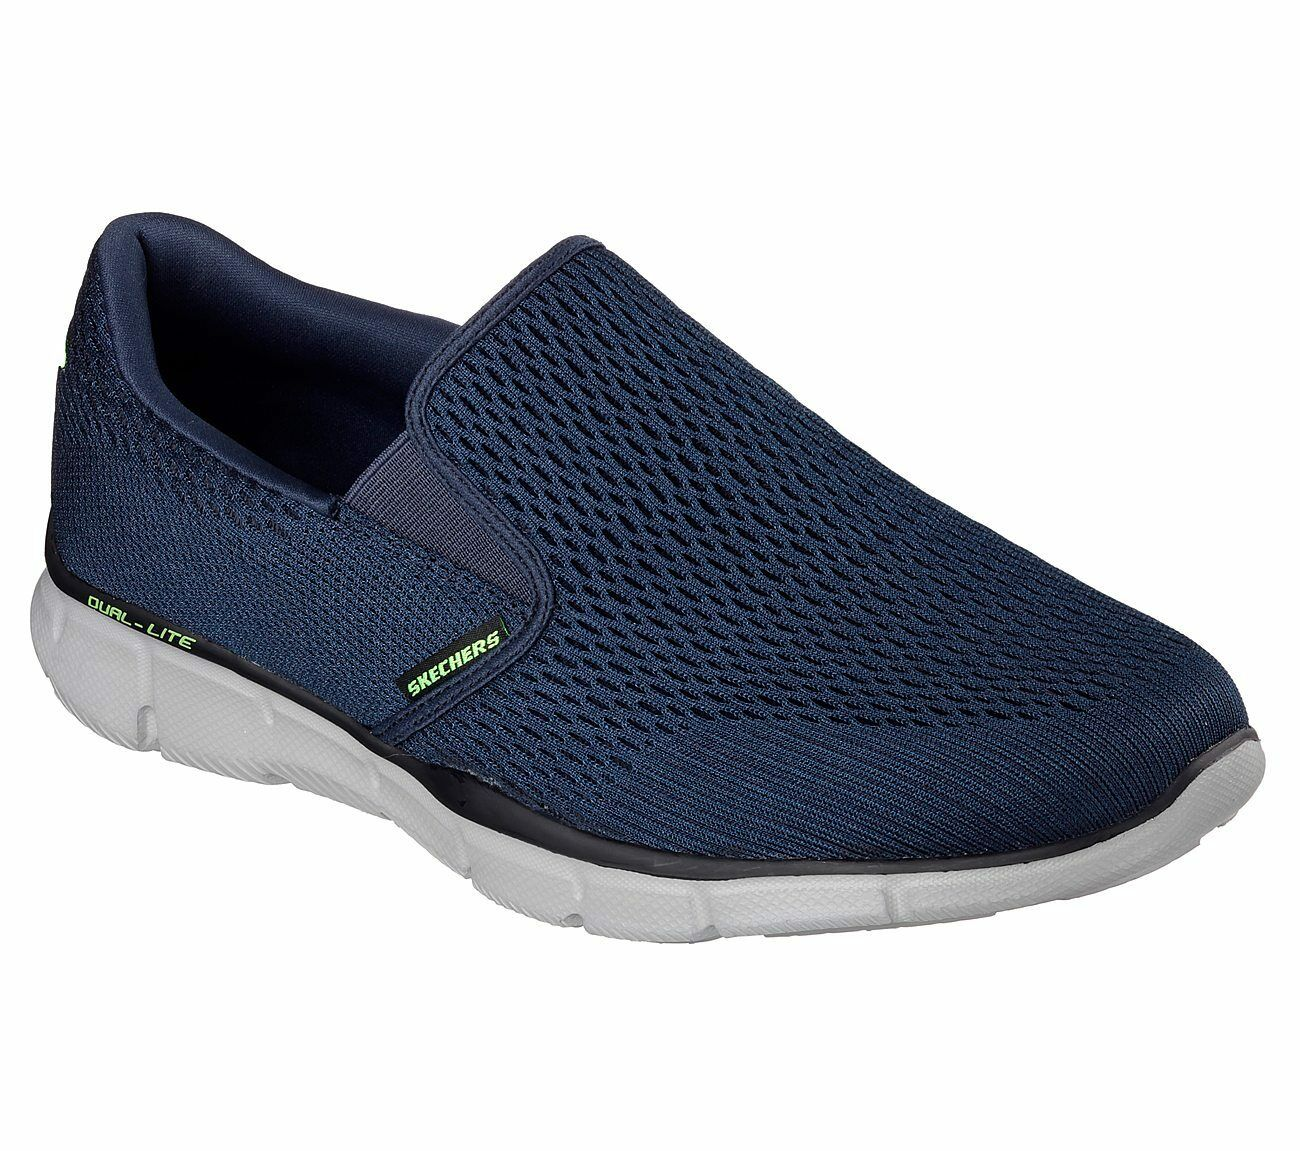 SKECHERS EQUALIZER - DOUBLE PAY - 51509 NVY -  Herren TRAINERS